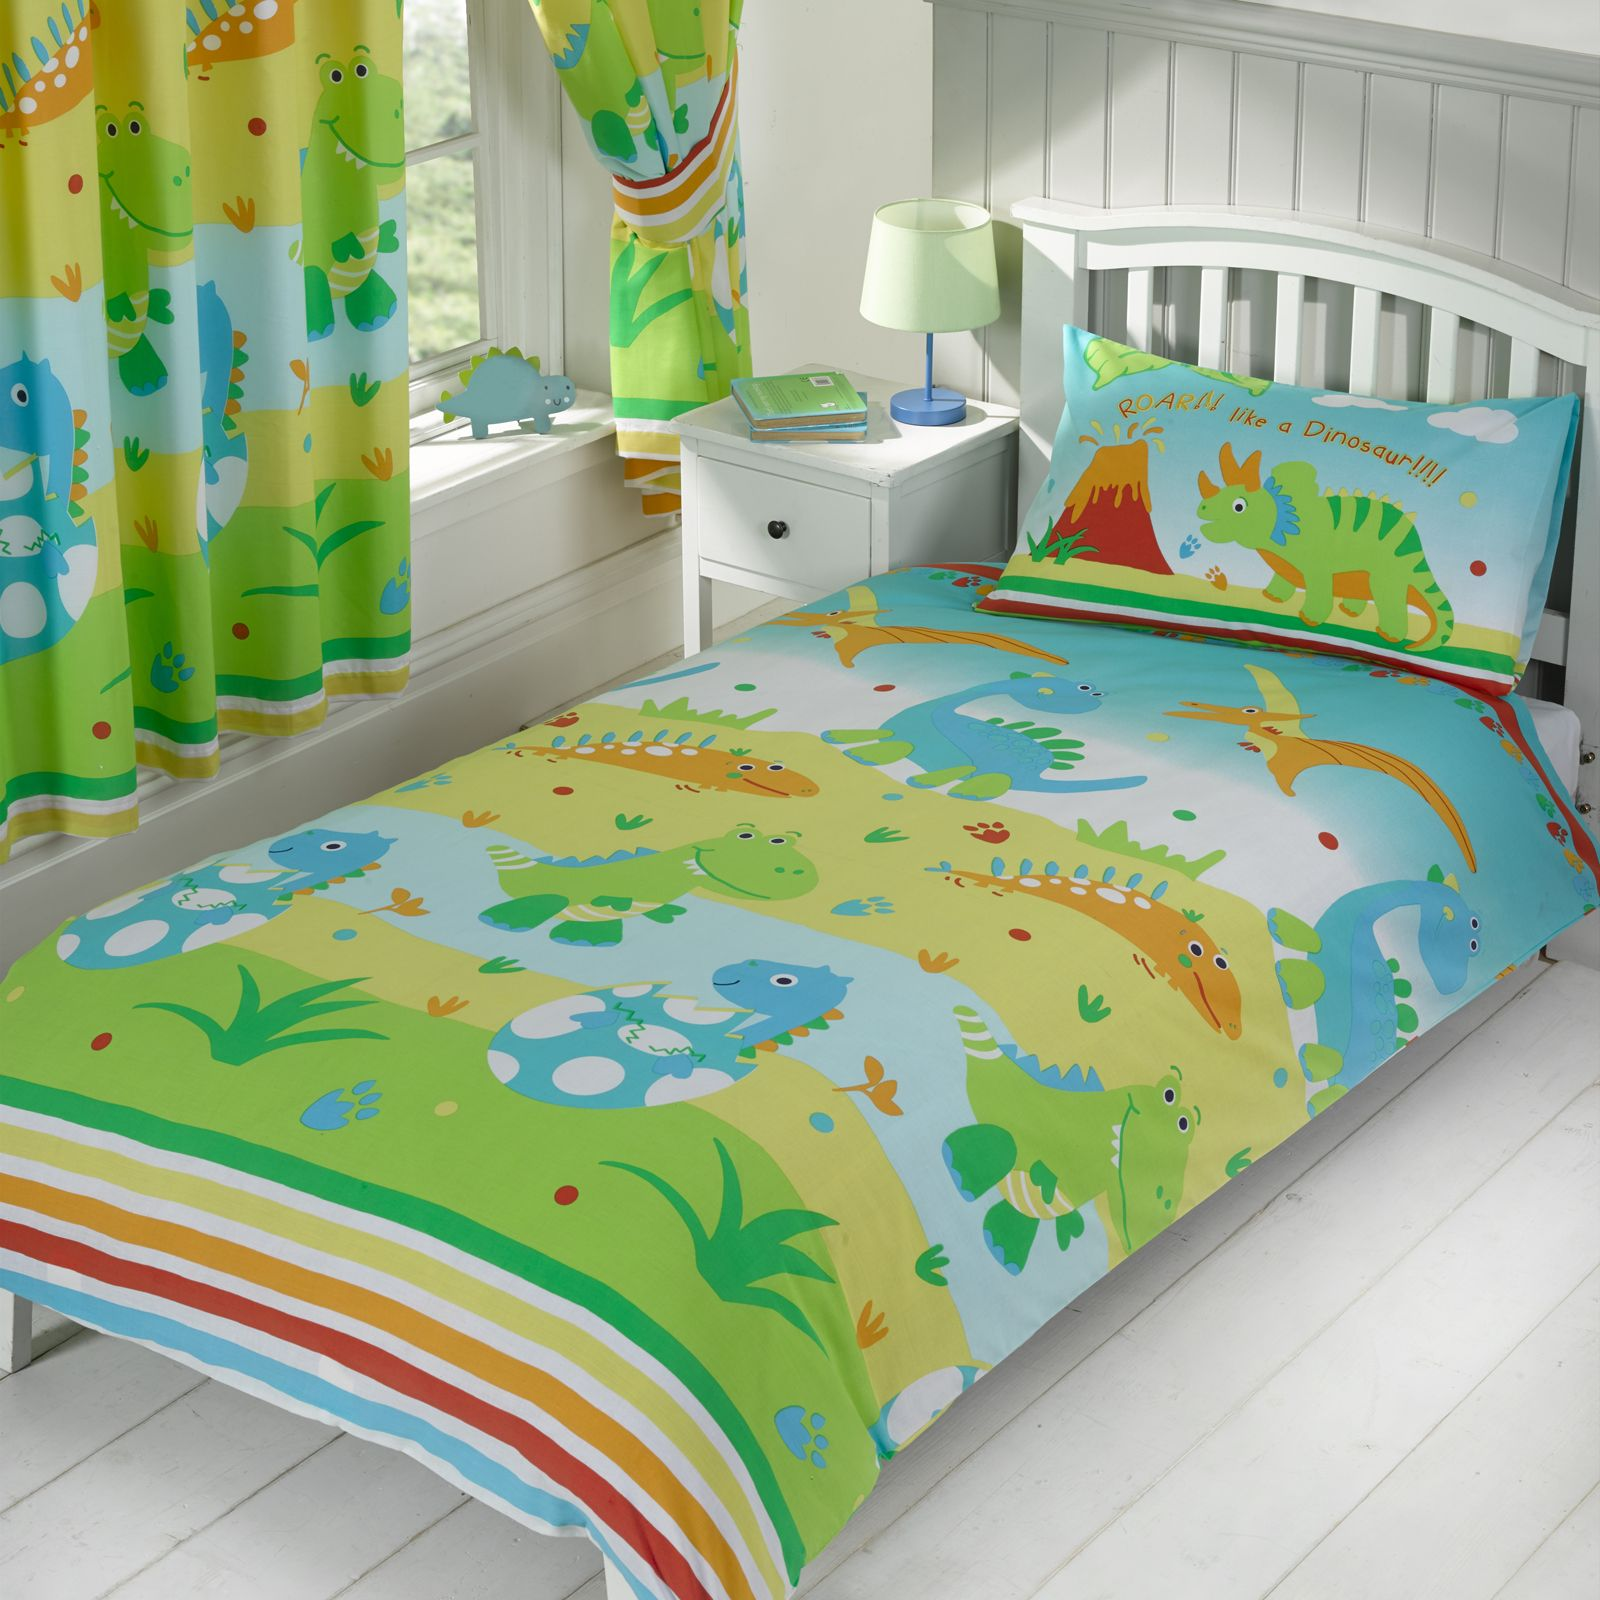 junior toddler duvet cover sets cot bedding unicorn dinosaur solar  - junior toddler duvet cover sets cot bedding unicorn dinosaur solar systemsnew